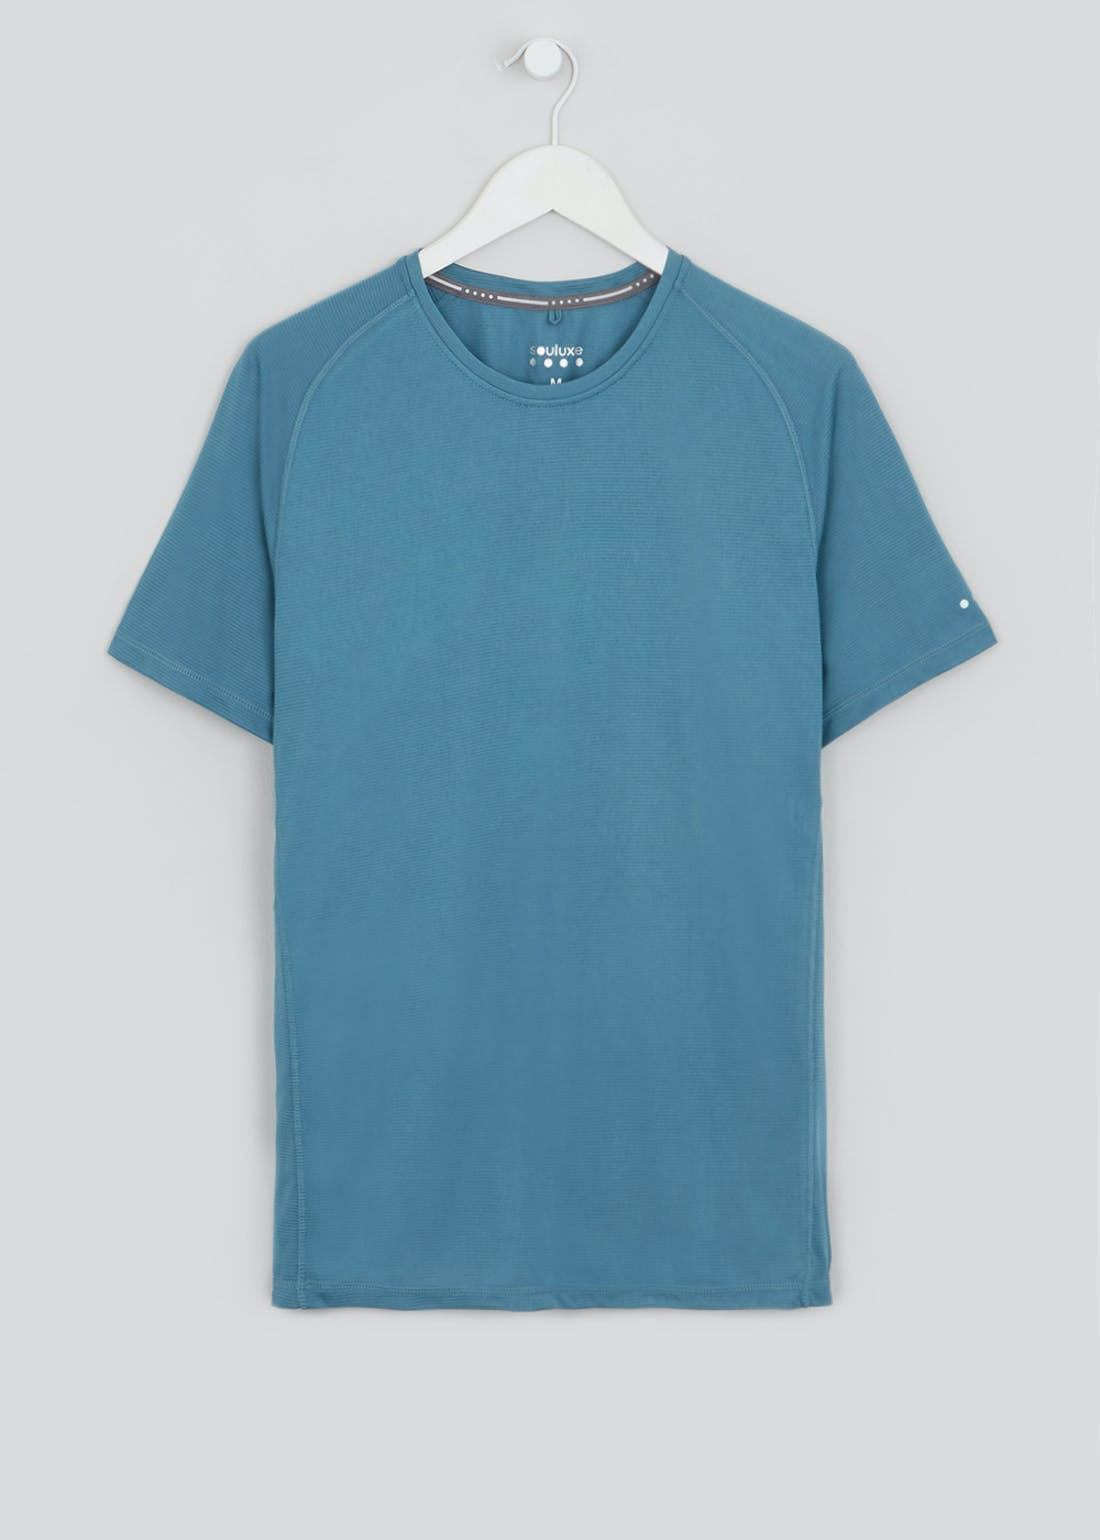 Souluxe Teal Textured Stripe Gym T-Shirt